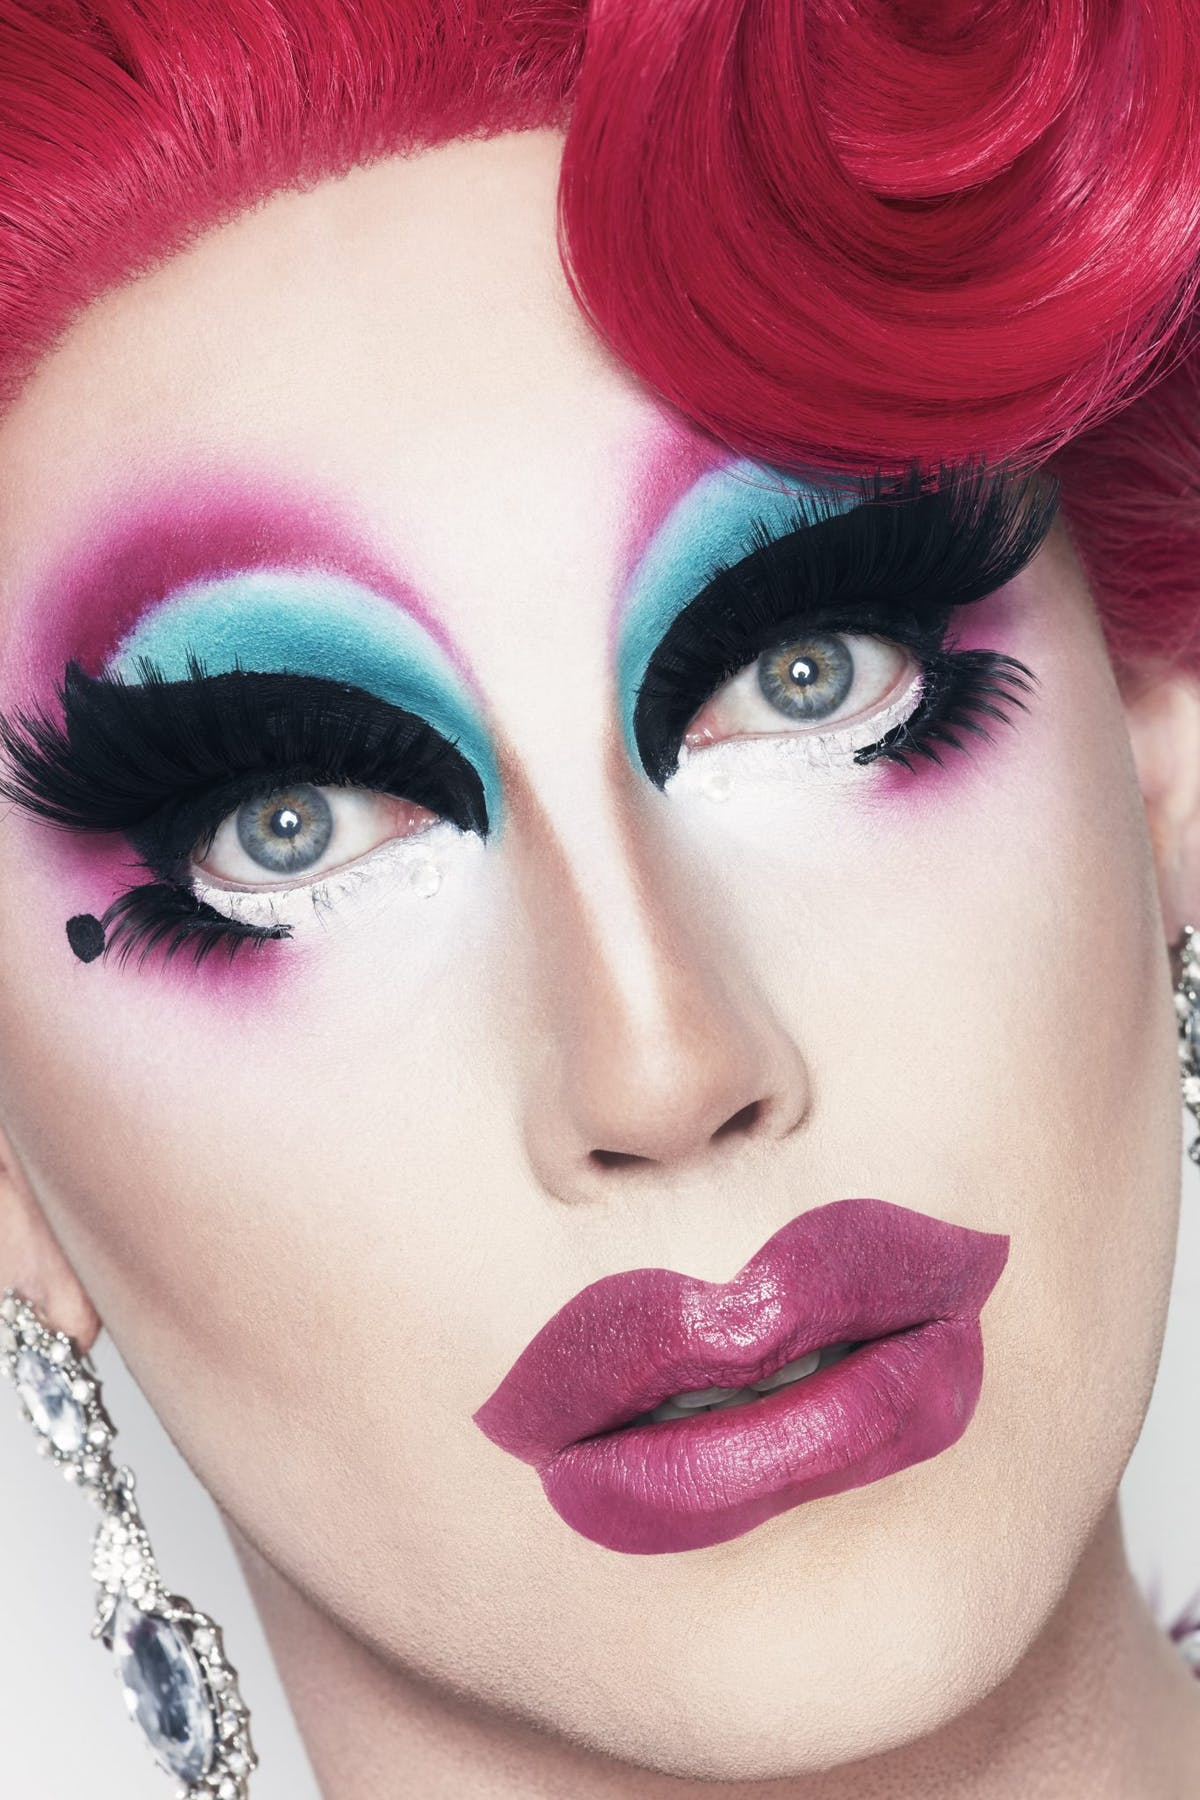 Best drag queen makeup tips and techniques - Drag queens share